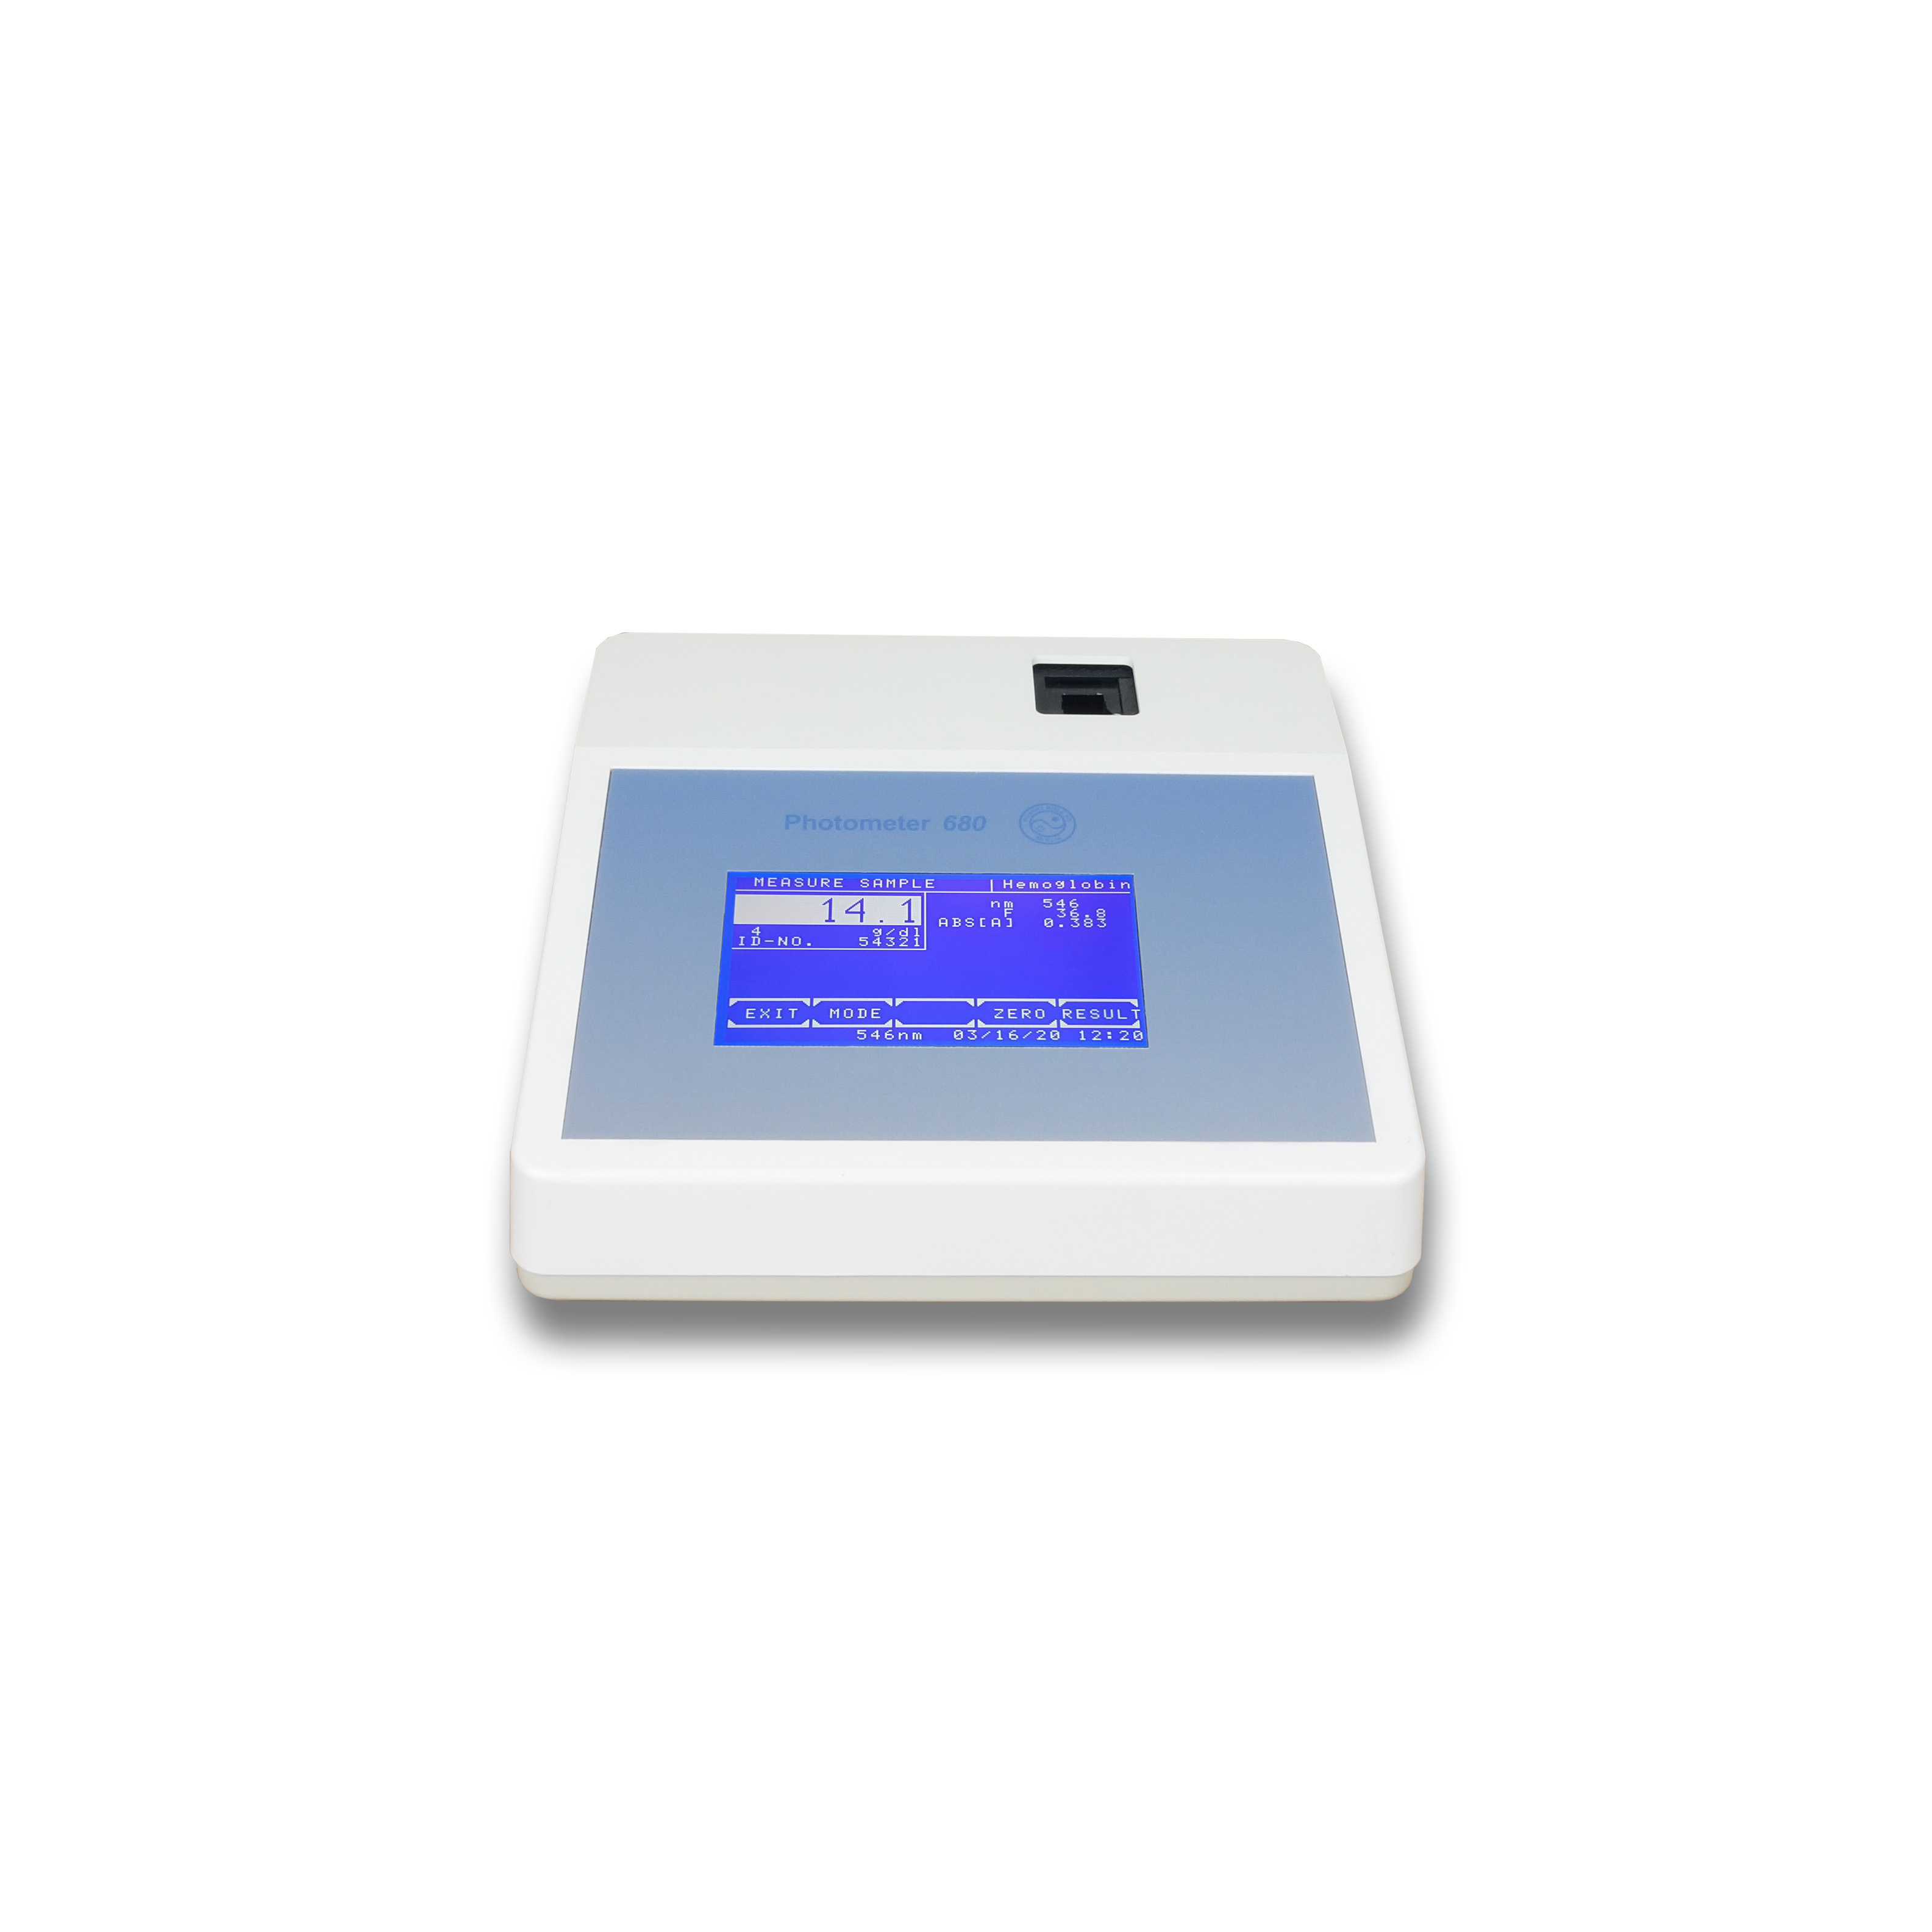 Photometer 680 with filter wheel